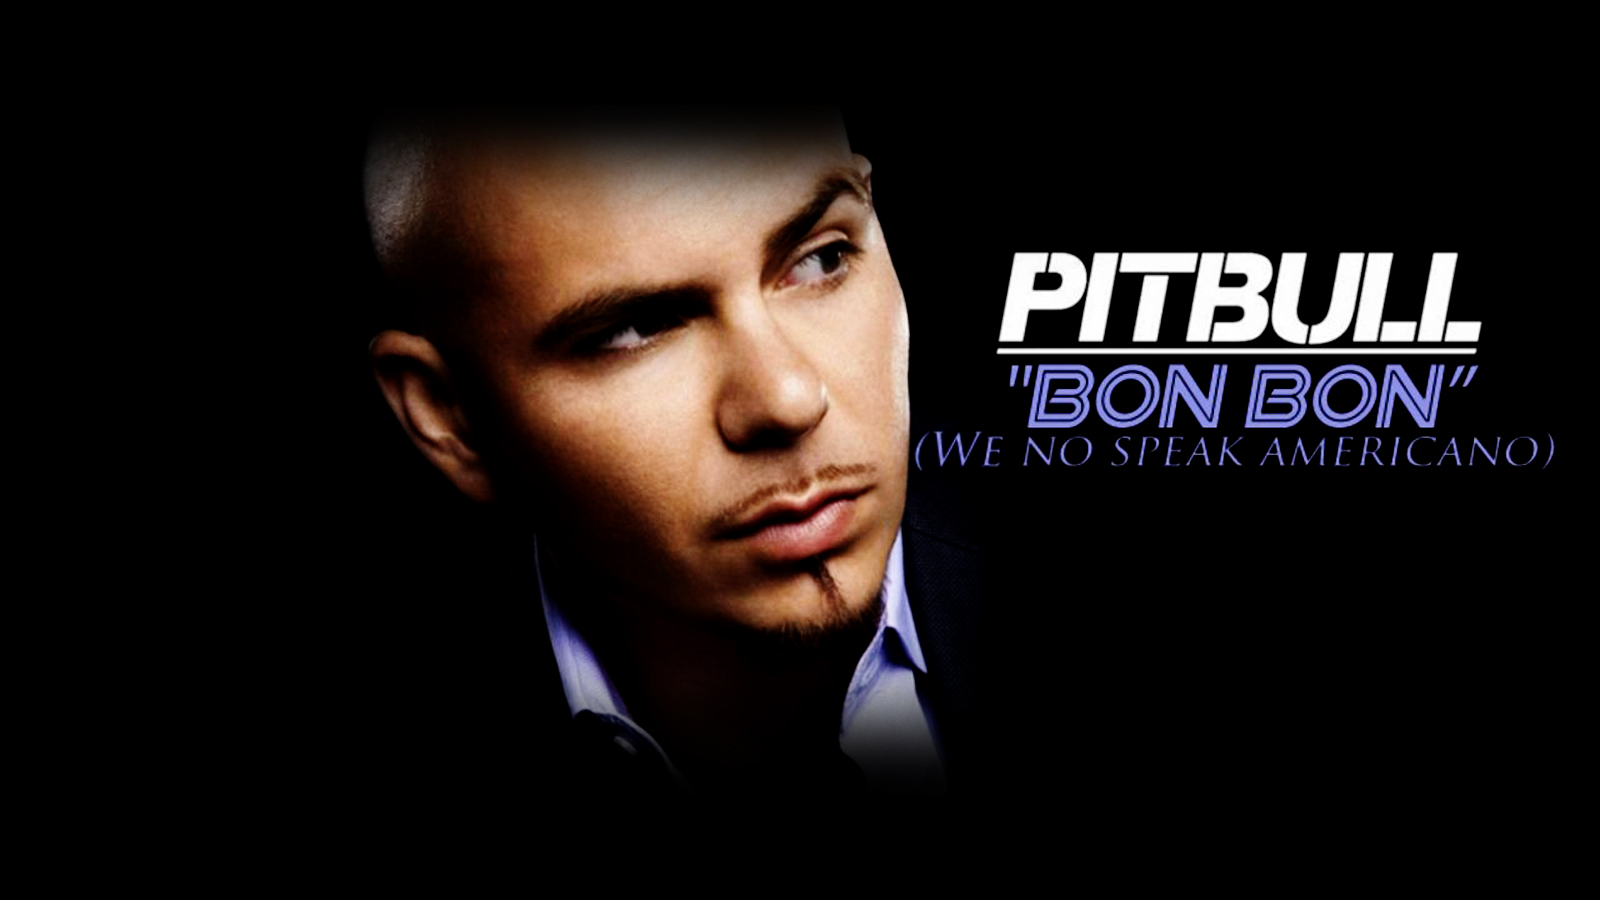 Pitbull Rapper Wallpapers & Pictures | Hd Wallpapers